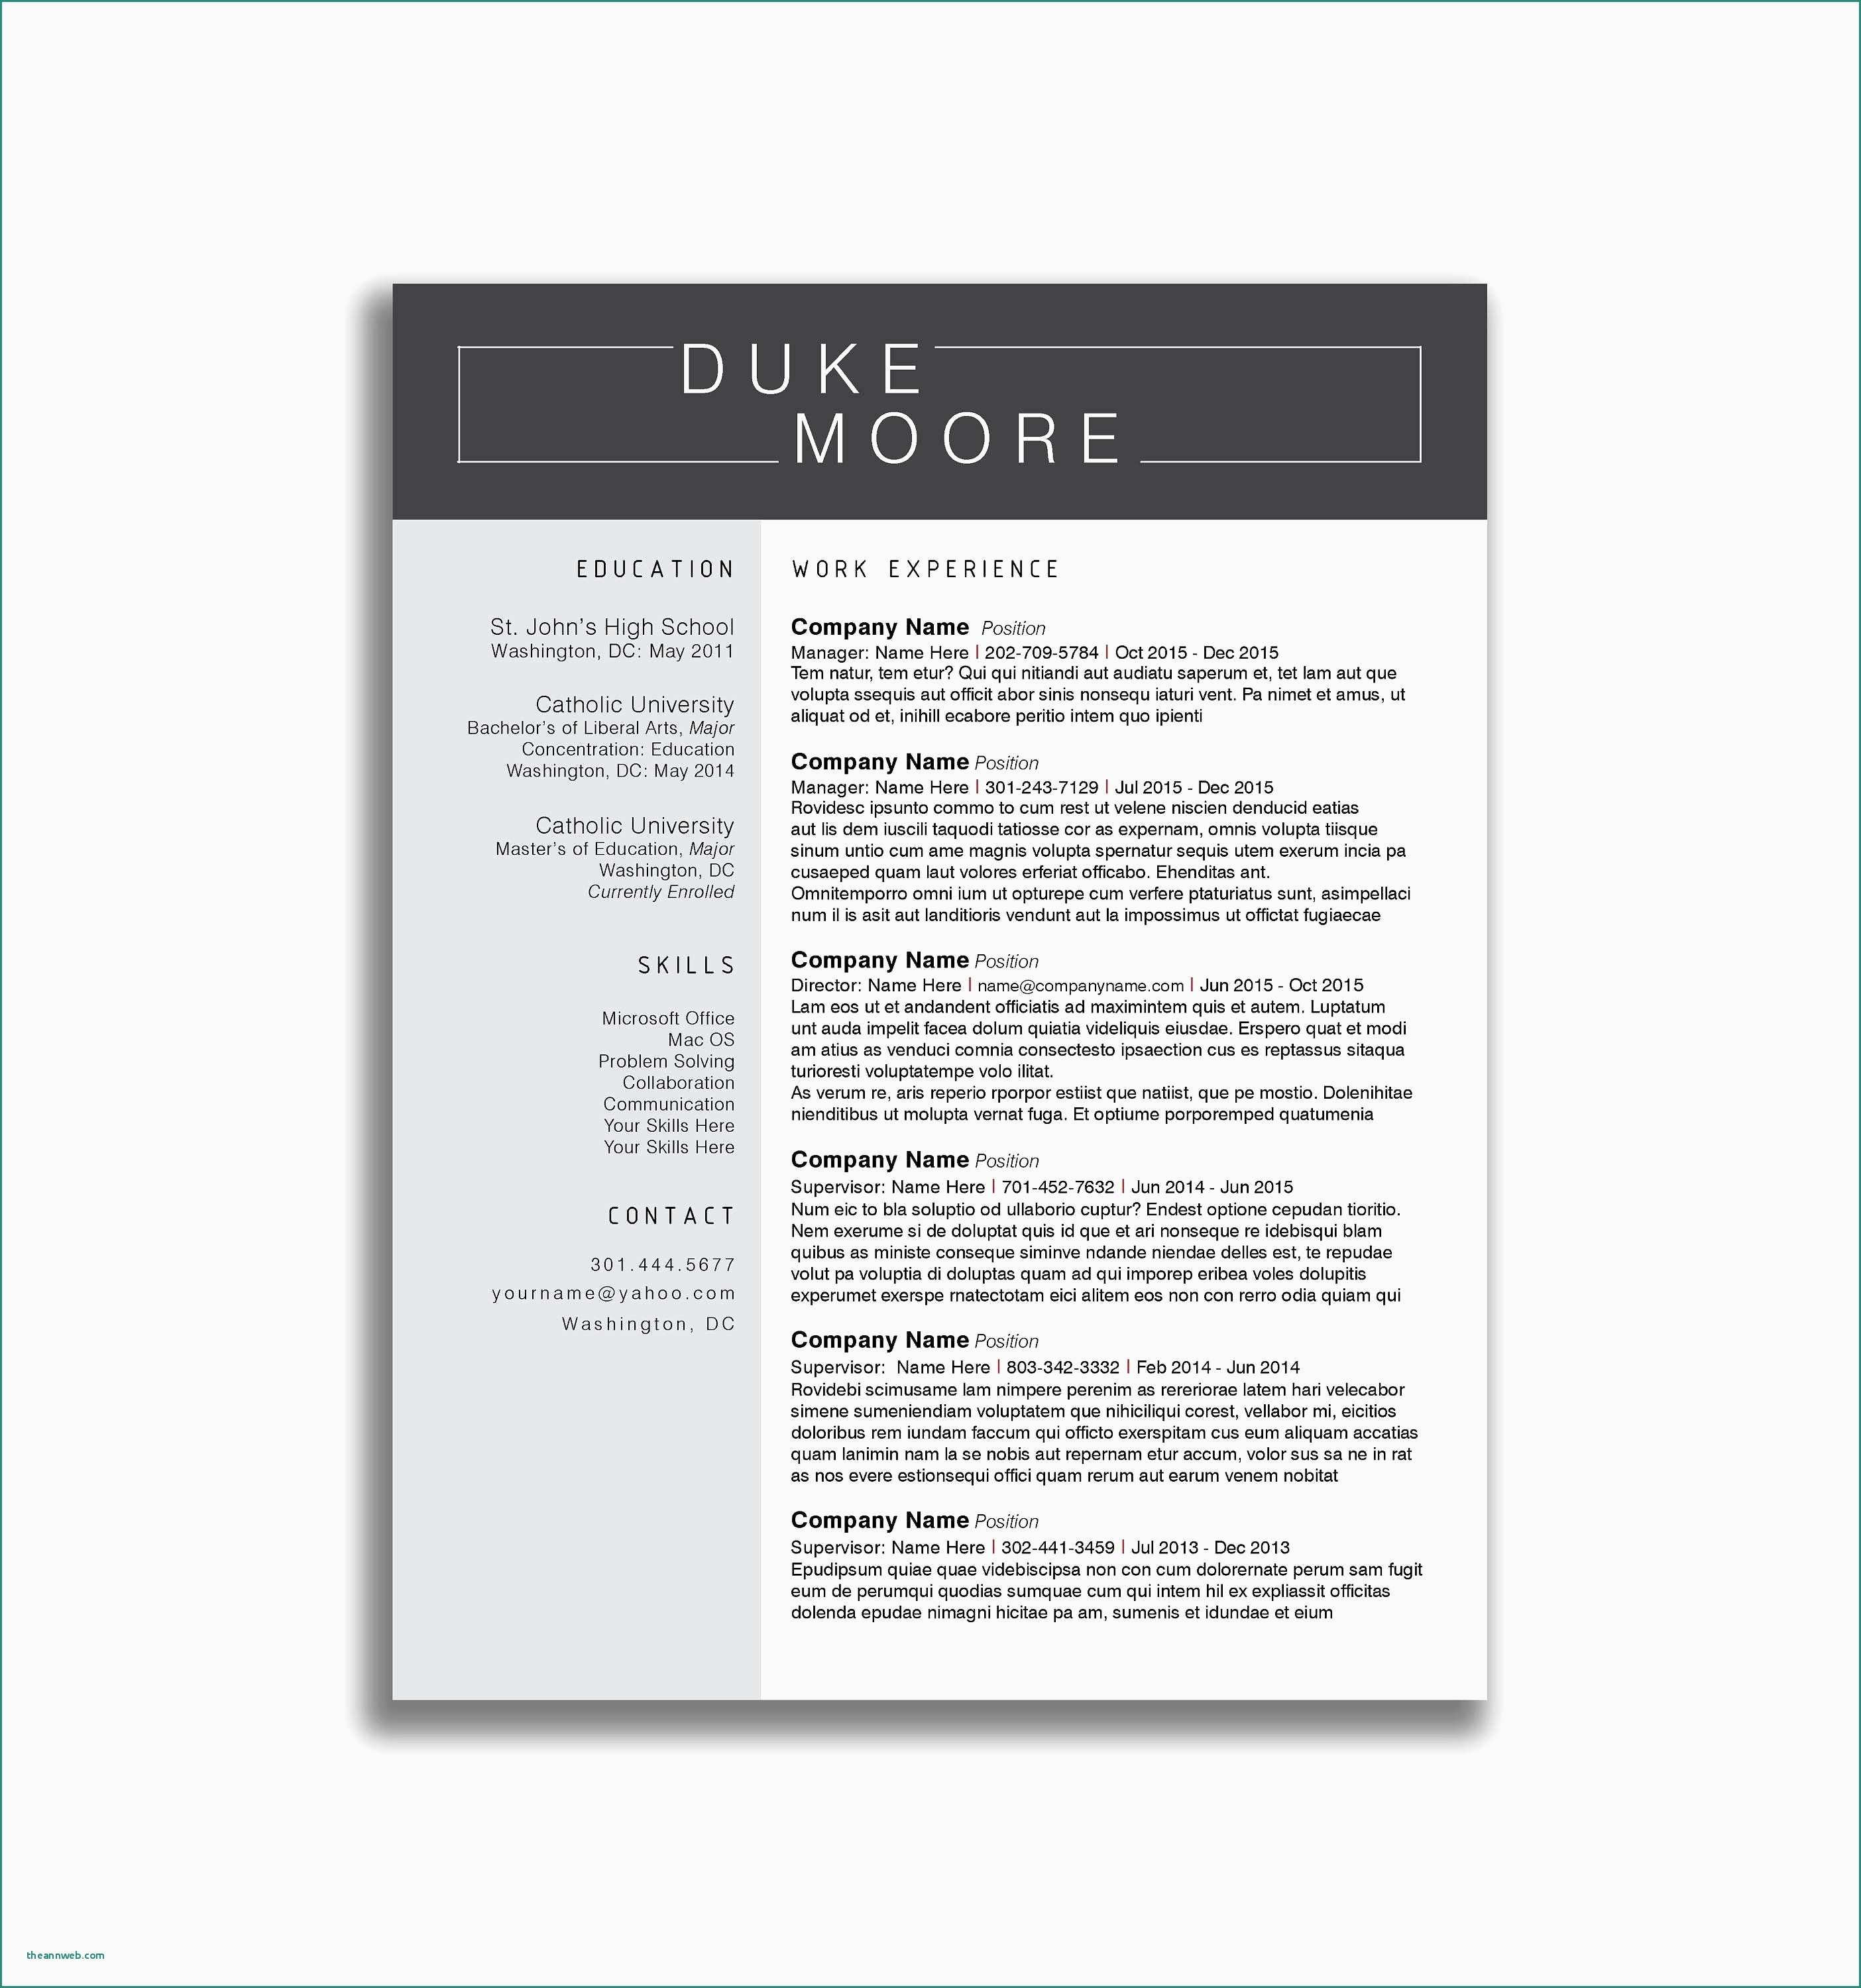 Uchicago Resume Template - Template for Resume References Downloadable Resume Templates Lovely